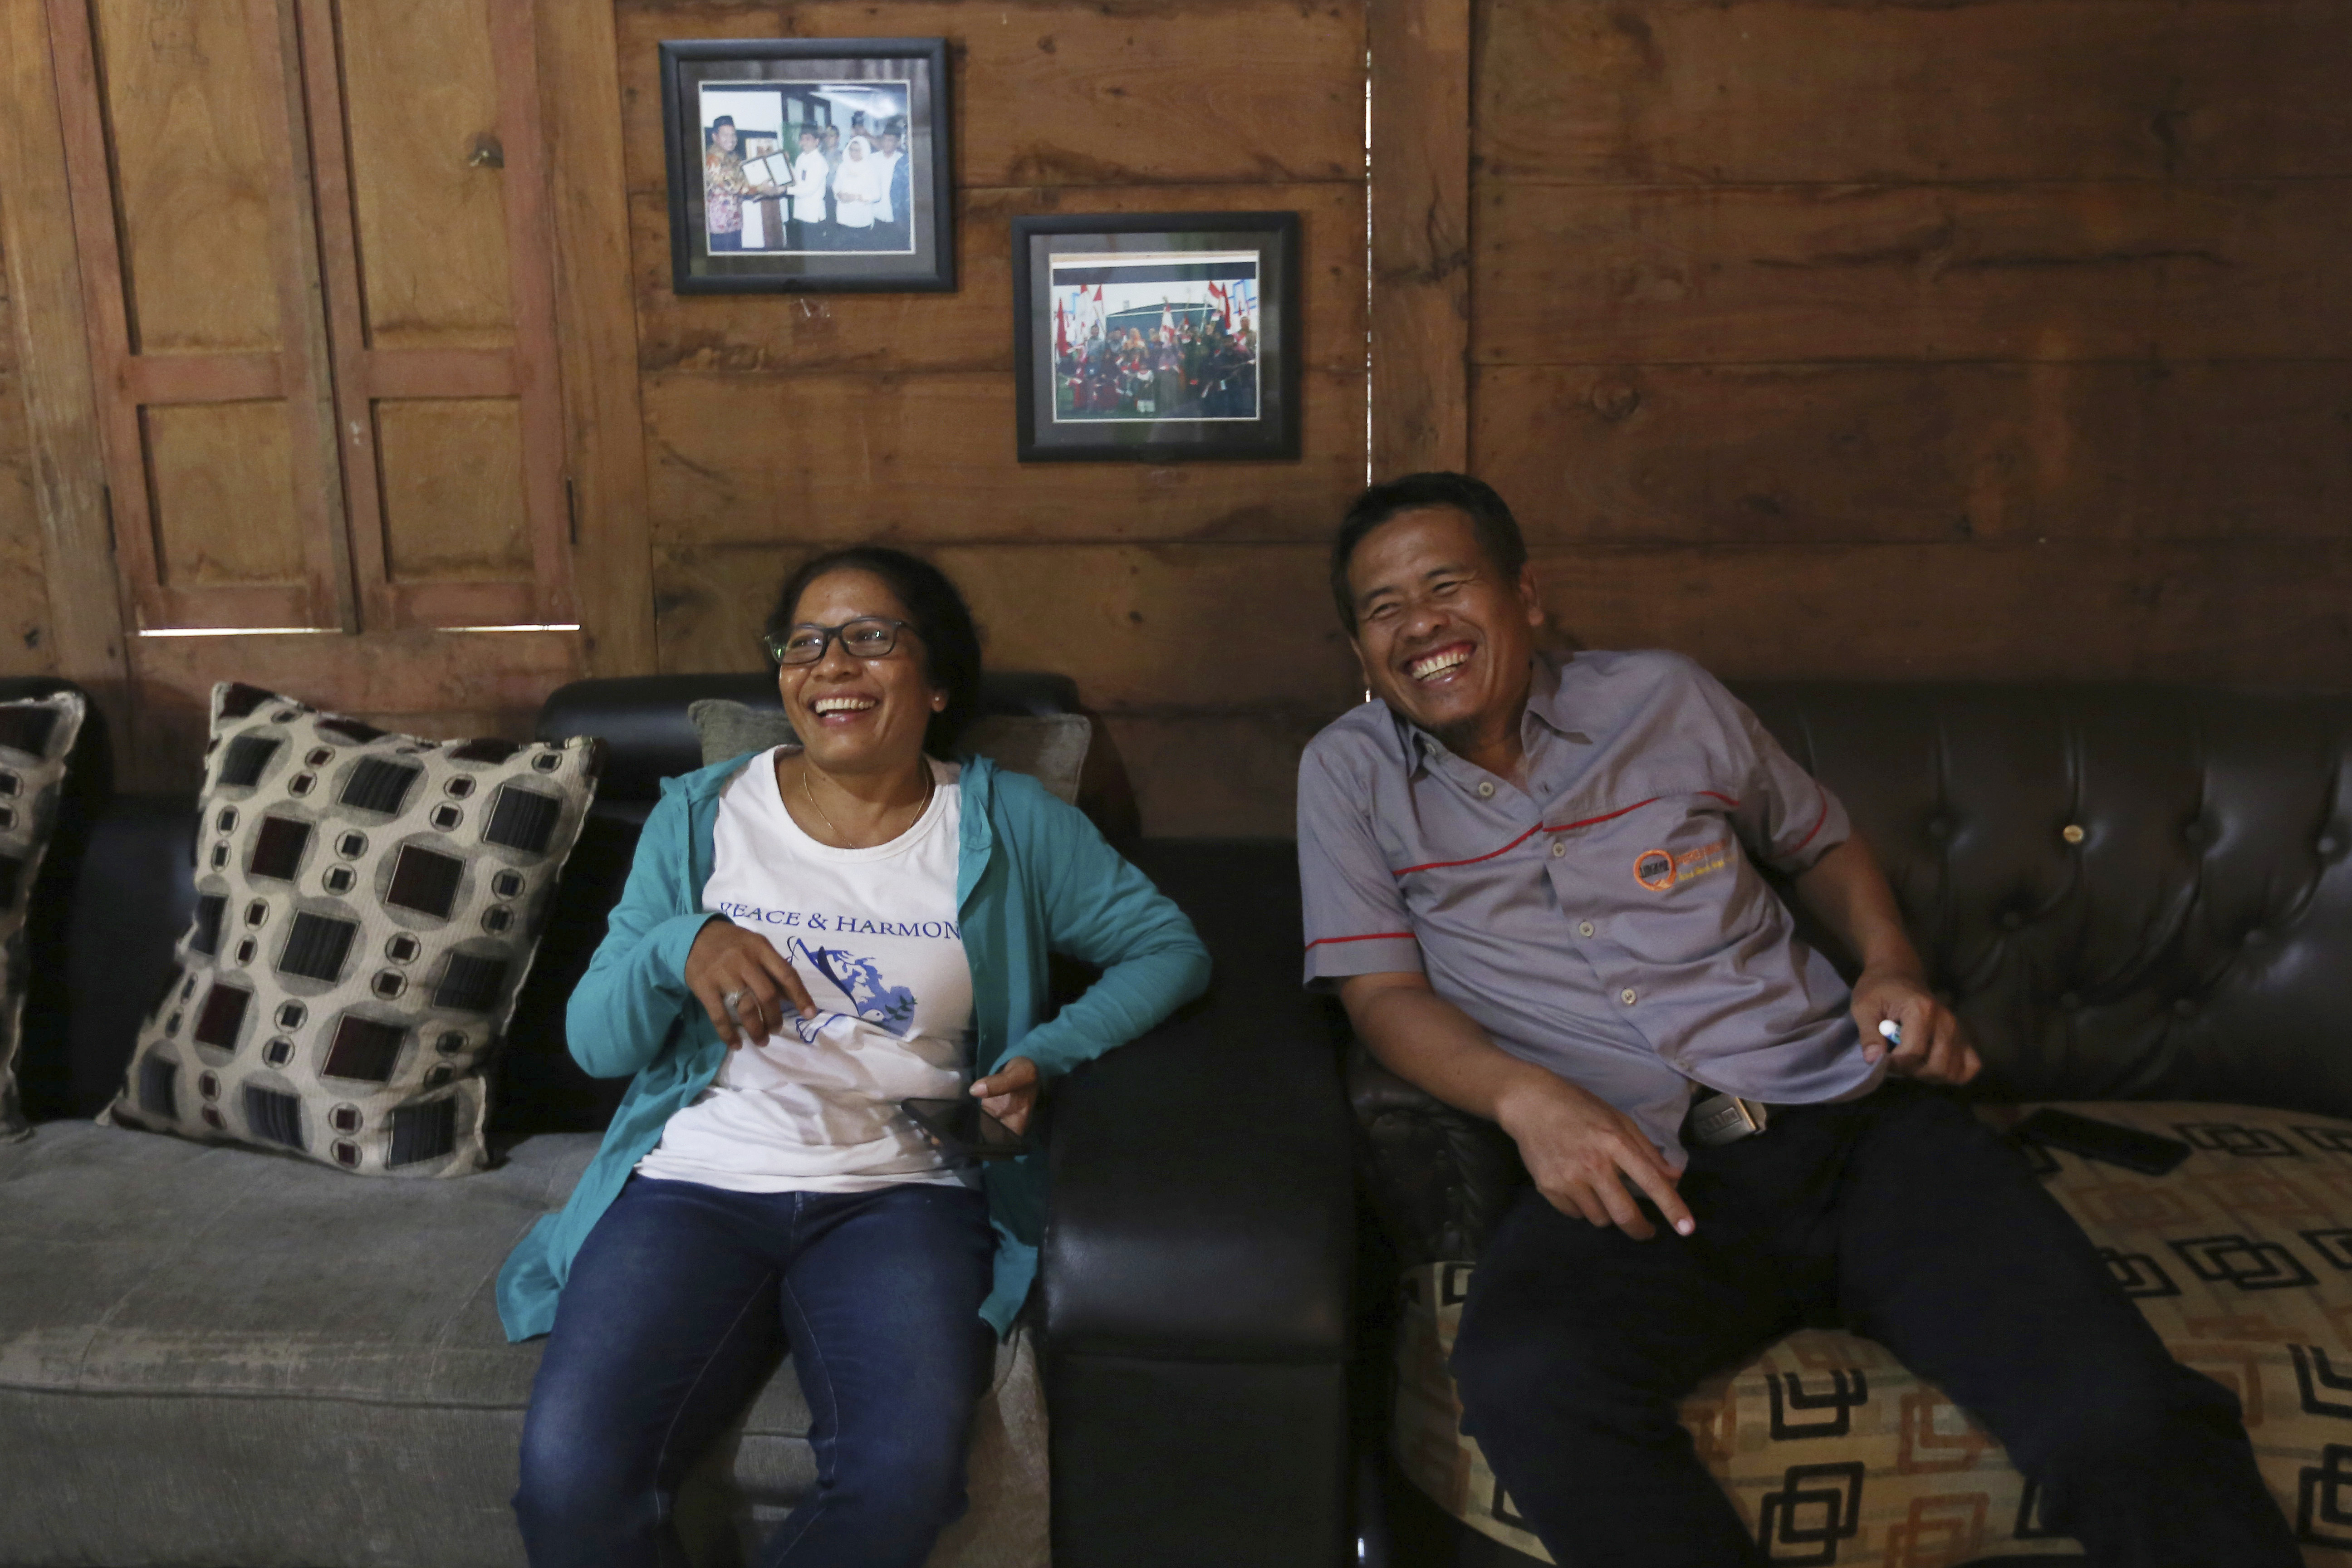 Ni Luh Erniati, left, laughs with Ali Fauzi during her visit to Fauzi's house in Tenggulun, East Java, Indonesia, on Saturday, April 27, 2019. Erniati, whose husband was killed in the 2002 Bali bombings, and Fauzi, a former bombmaker whose brothers helped orchestrate the Bali attack, have reconciled as part of a peacebuilding program bringing together ex-terrorists and victims.